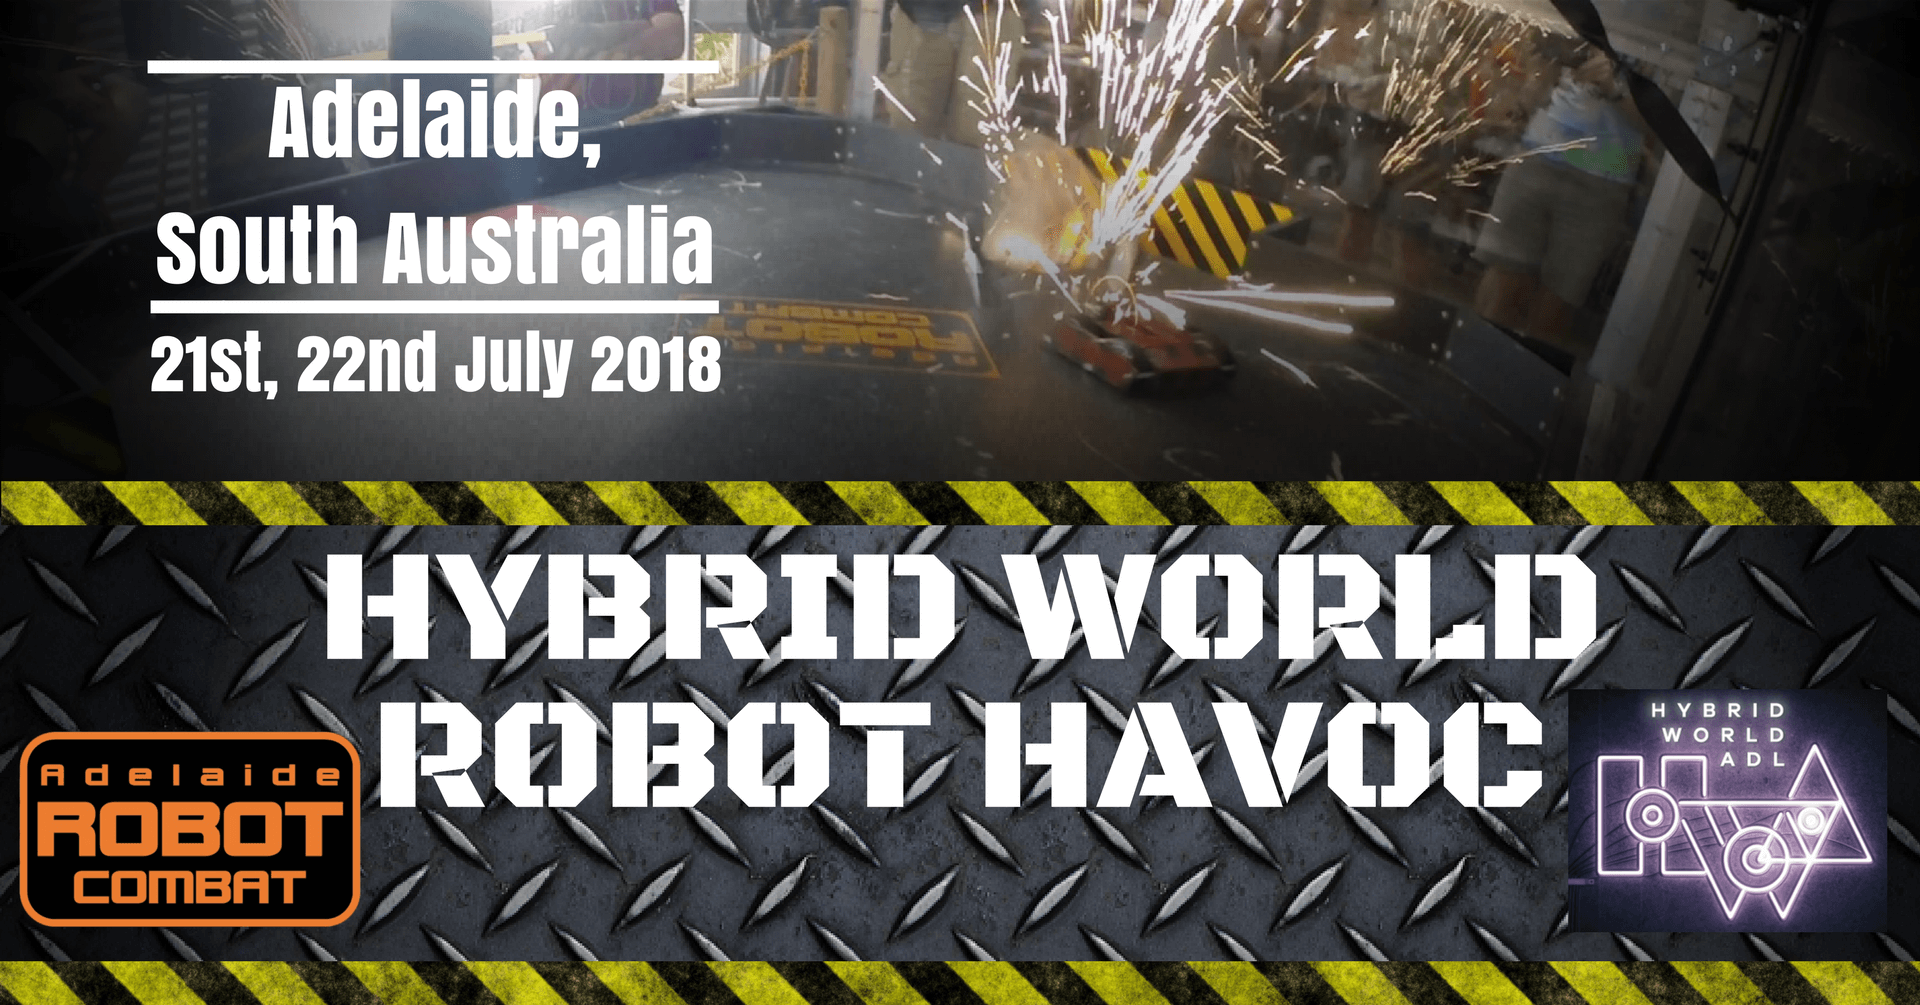 Hybrid world robot havoc robot eventcompressed